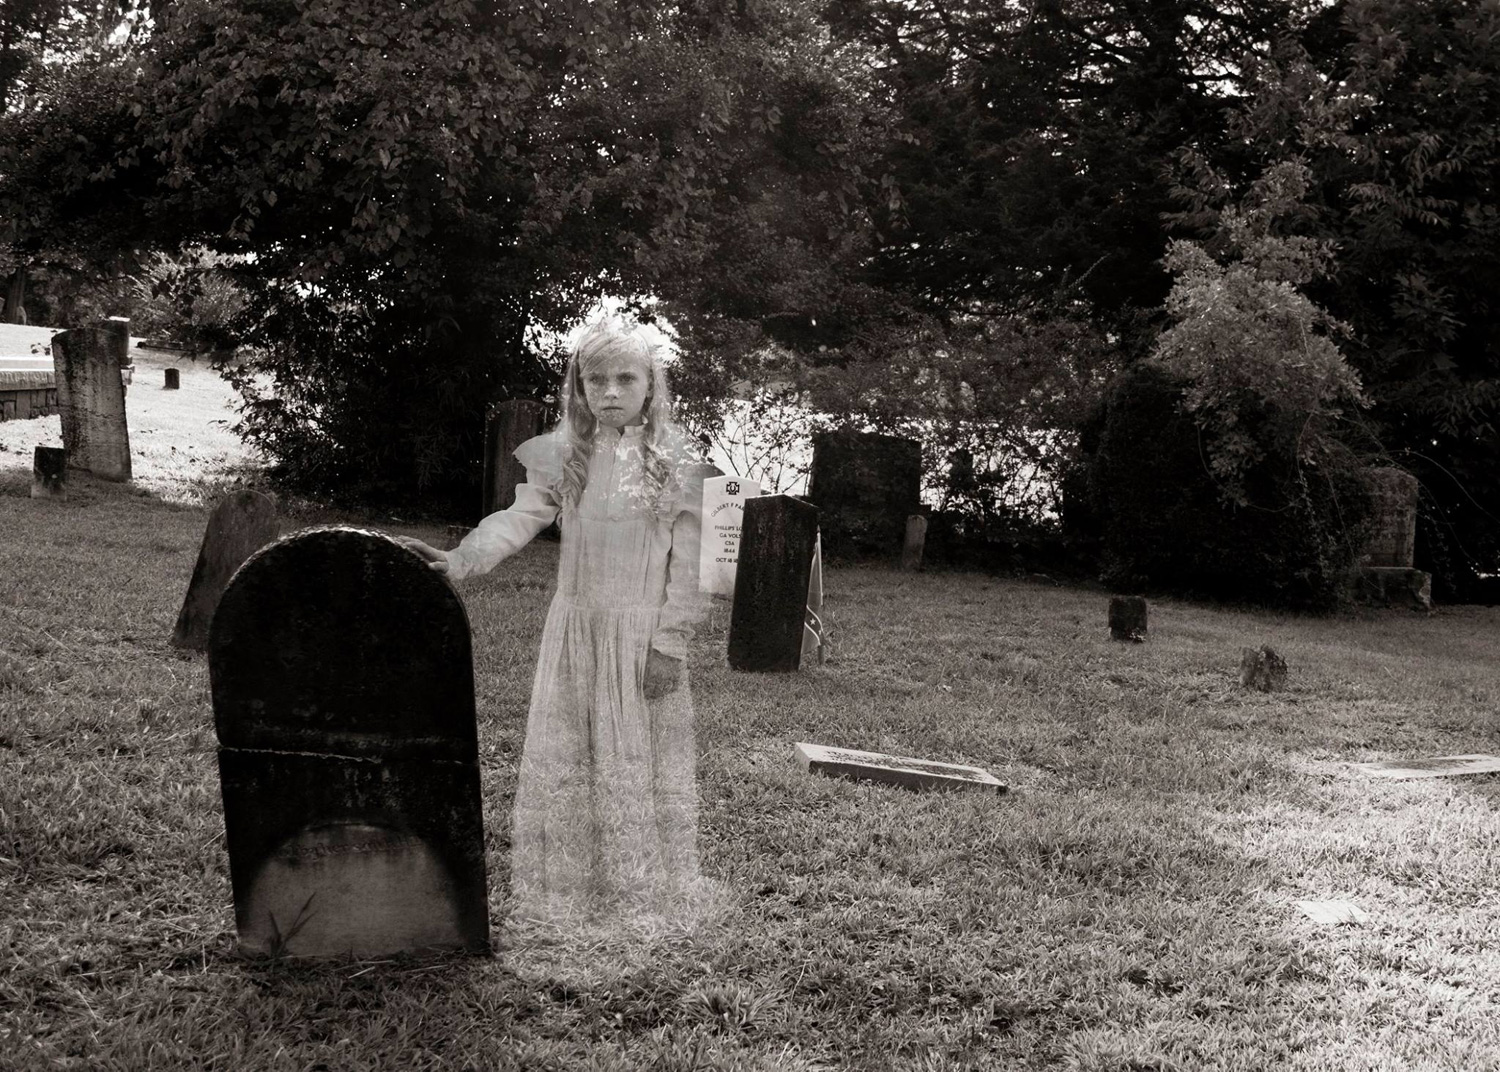 Hear tales and legends on Dahlonega's Historic Ghost Tour